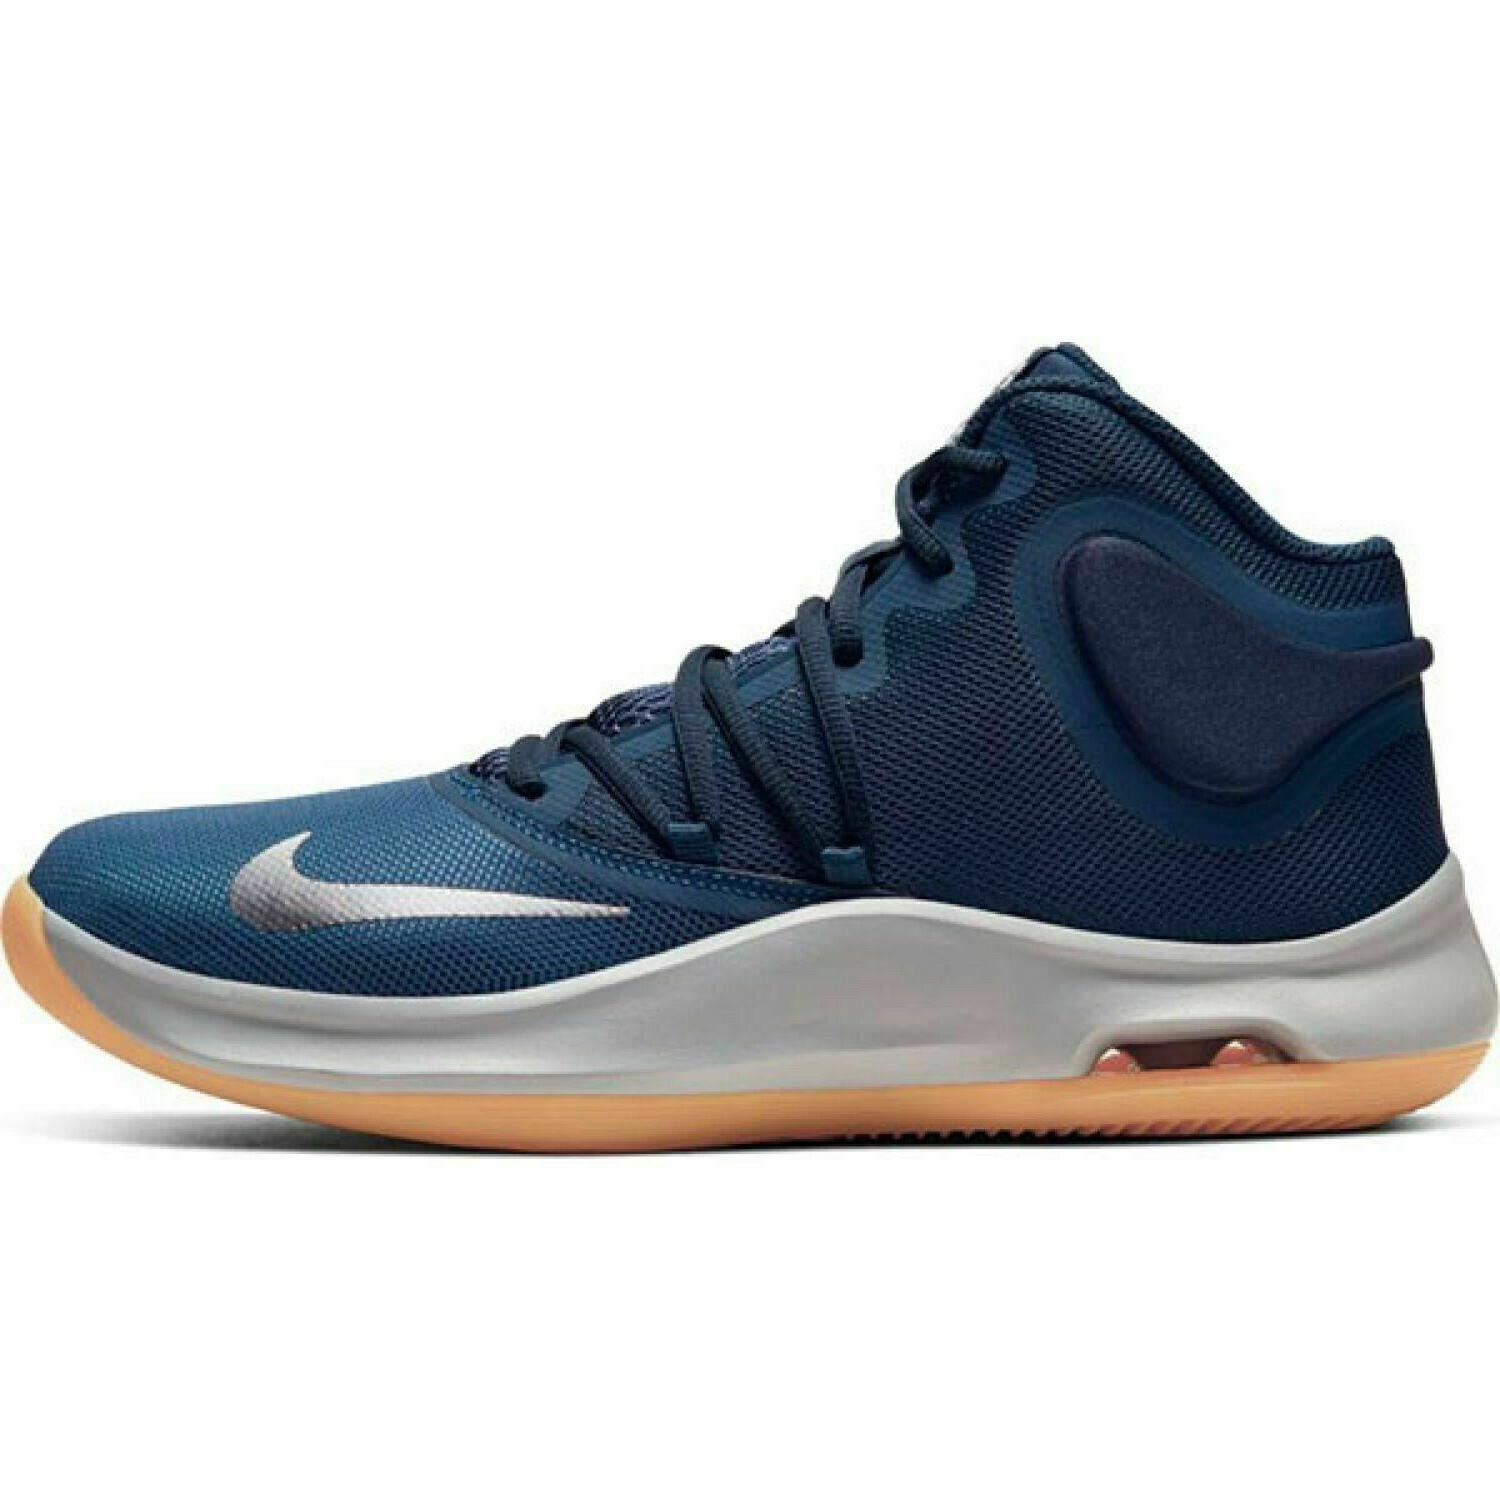 Nike Air Versitile Basketball Shoes Navy White Gum Men's NEW